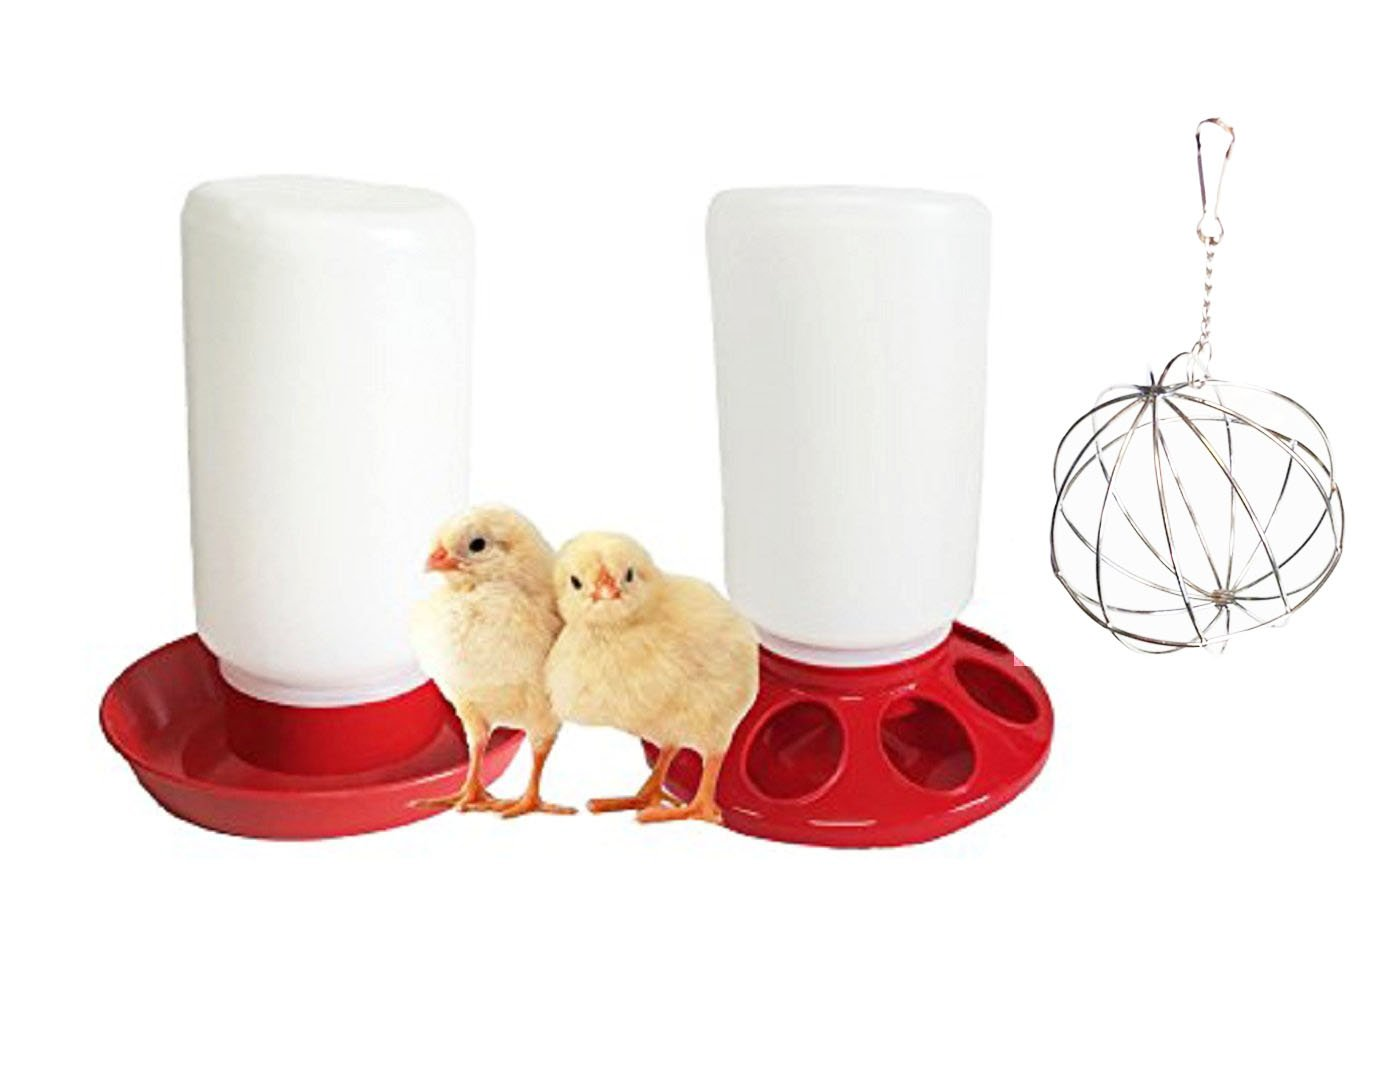 Chicken Starter Kit Supplies: Chicken Feeder, Waterer and Treat Ball - All You Need To Start Raising Chicks by UberMade